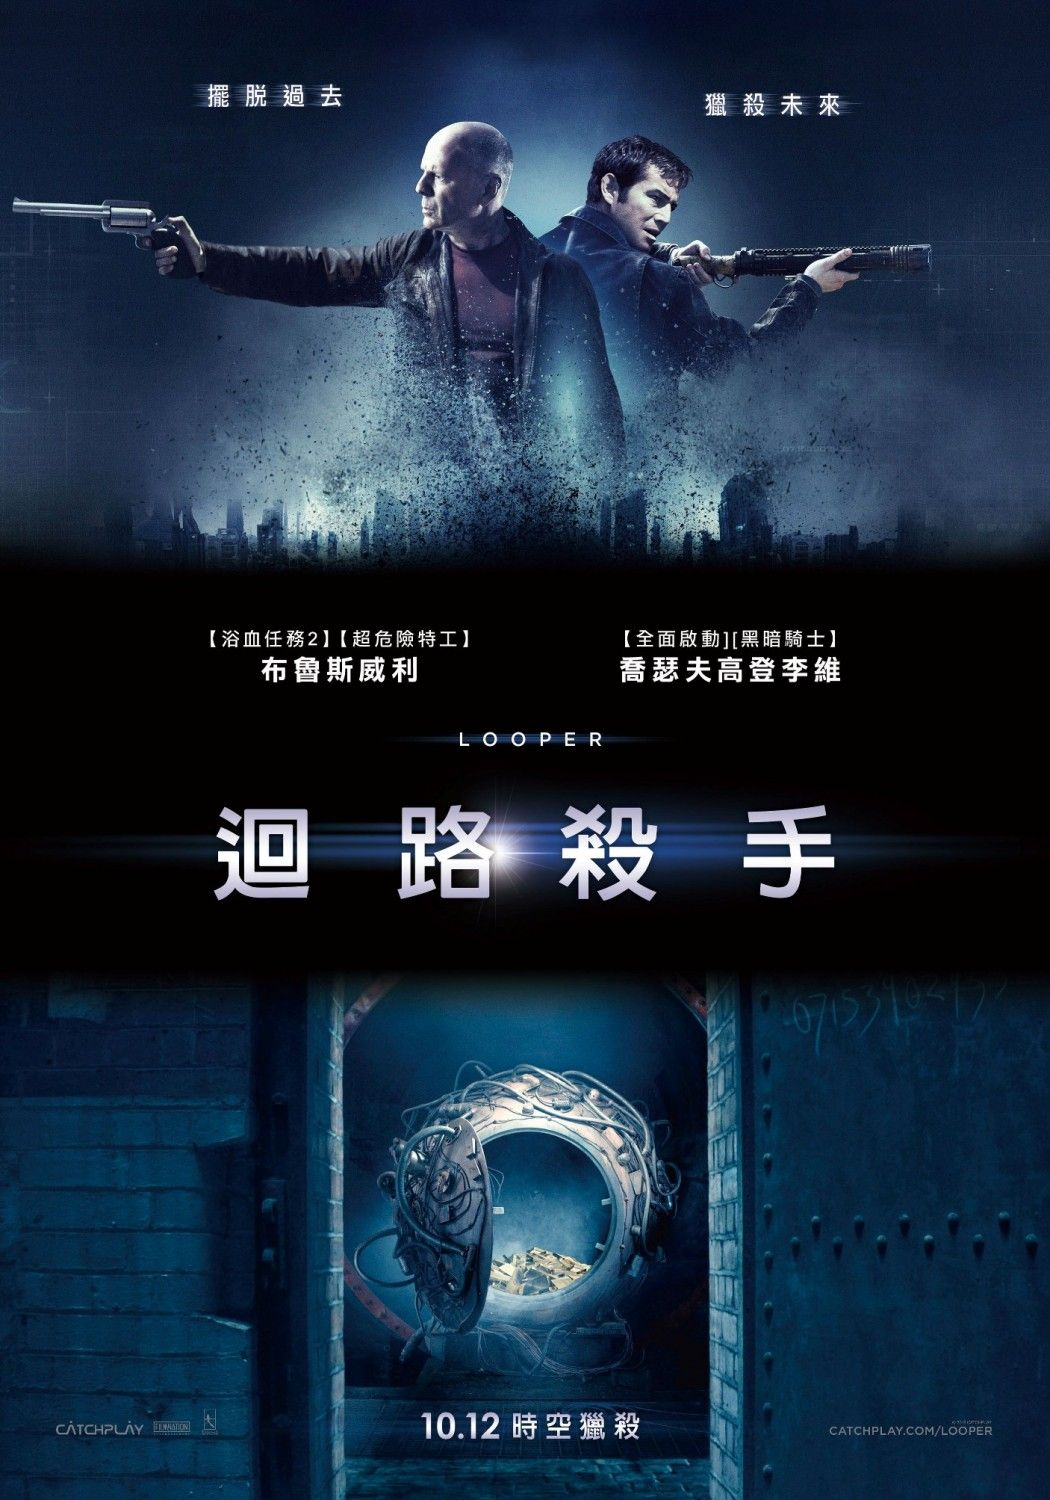 Chinese posters for Looper